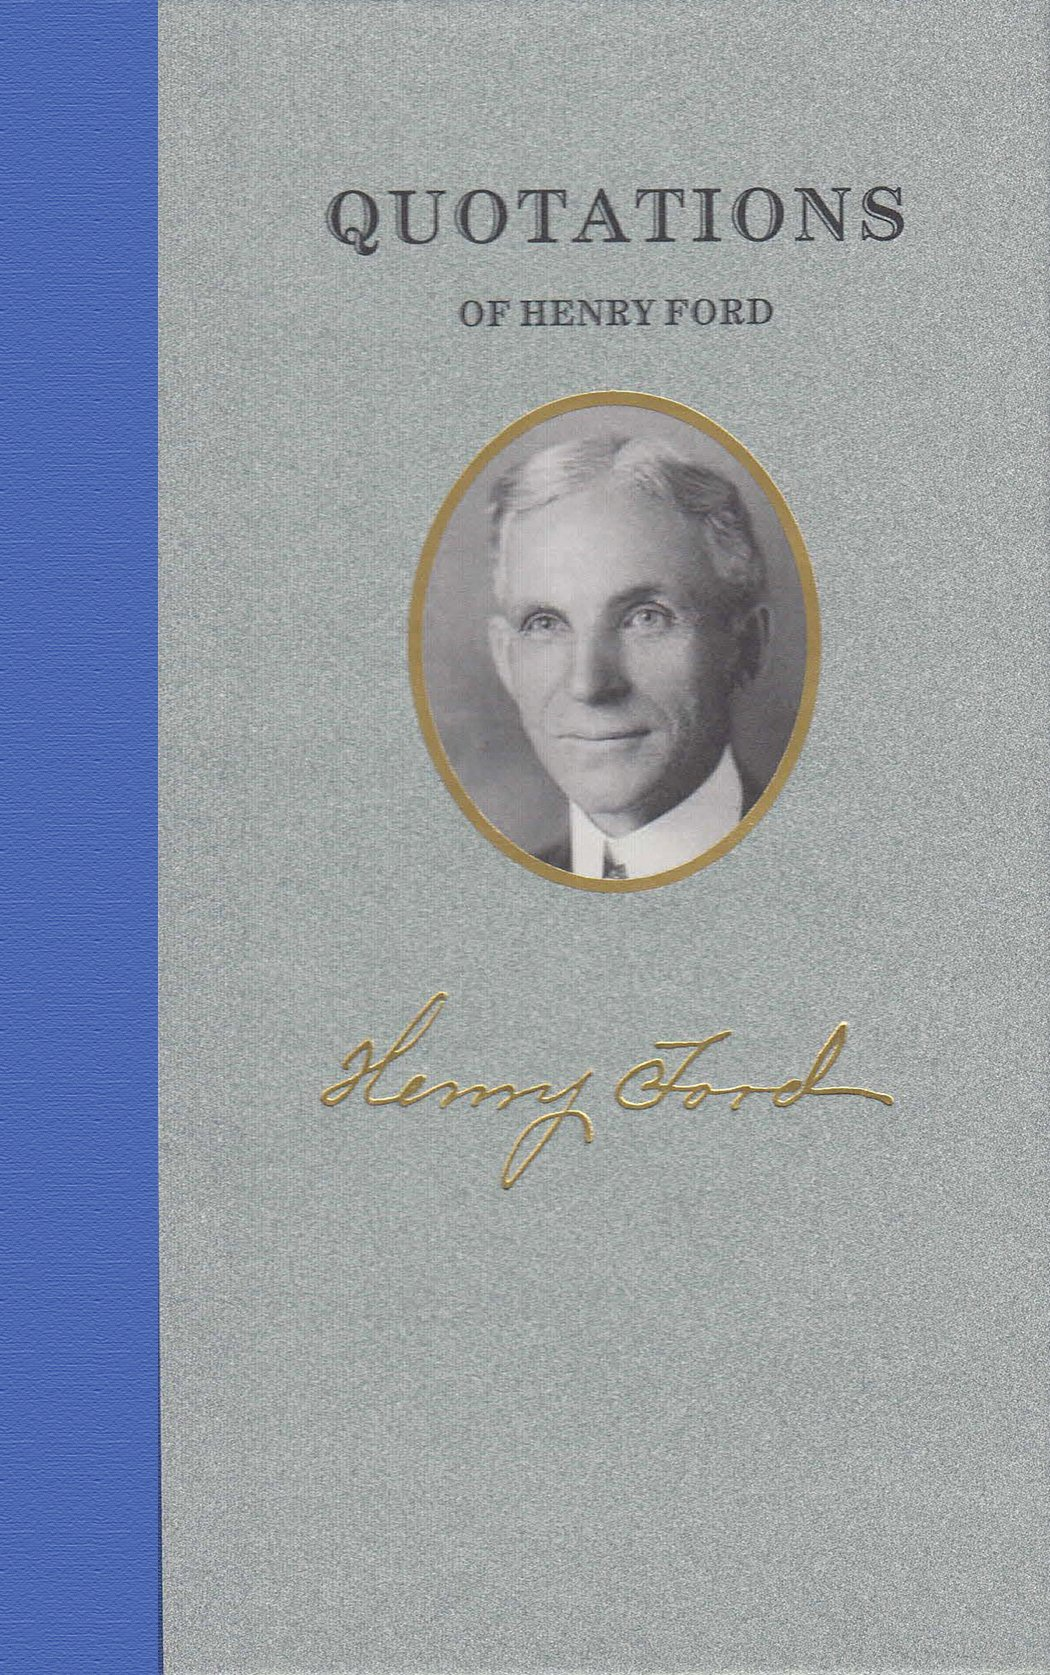 Quotations of Henry Ford (Quotations of Great Americans)